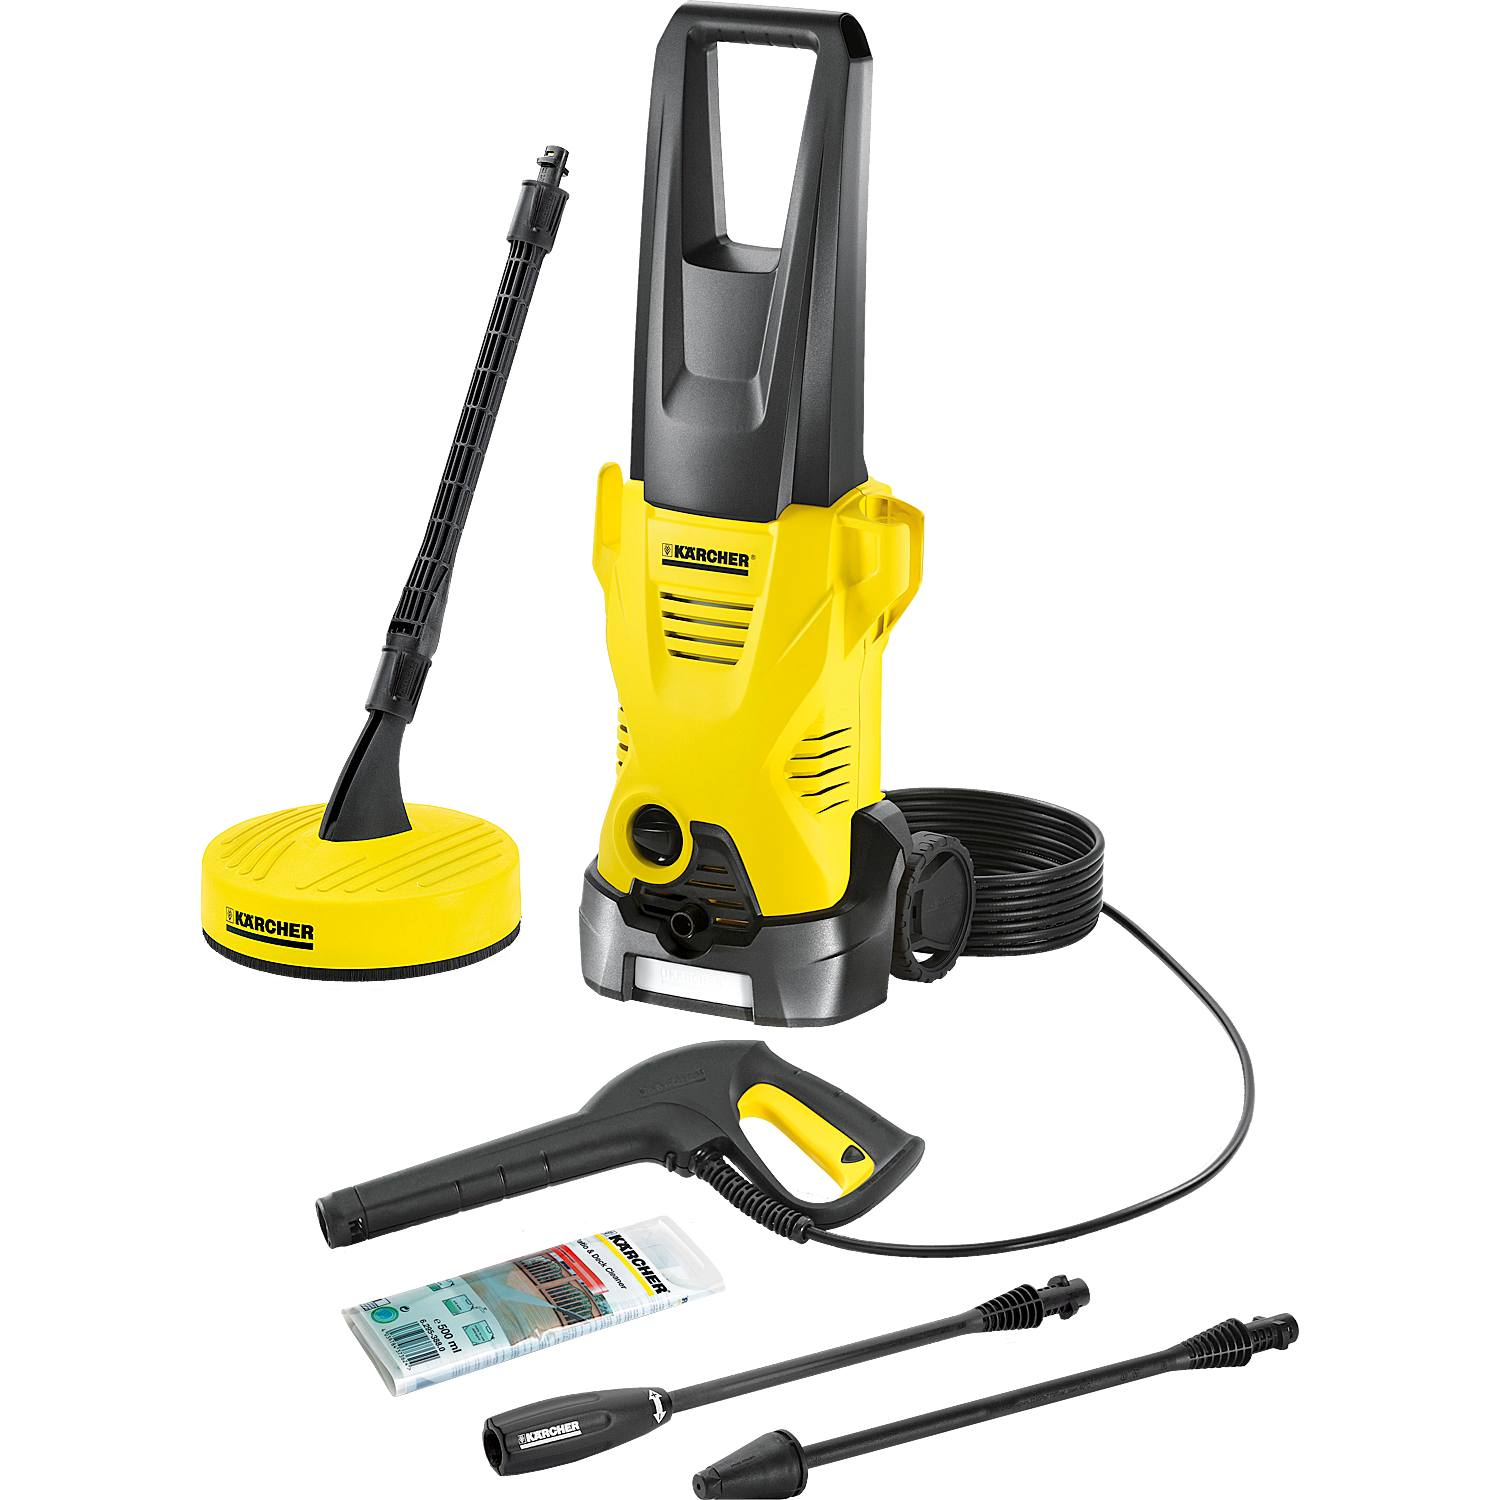 karcher k2 1400 watts premium home high pressure portable washer in yellow new ebay. Black Bedroom Furniture Sets. Home Design Ideas